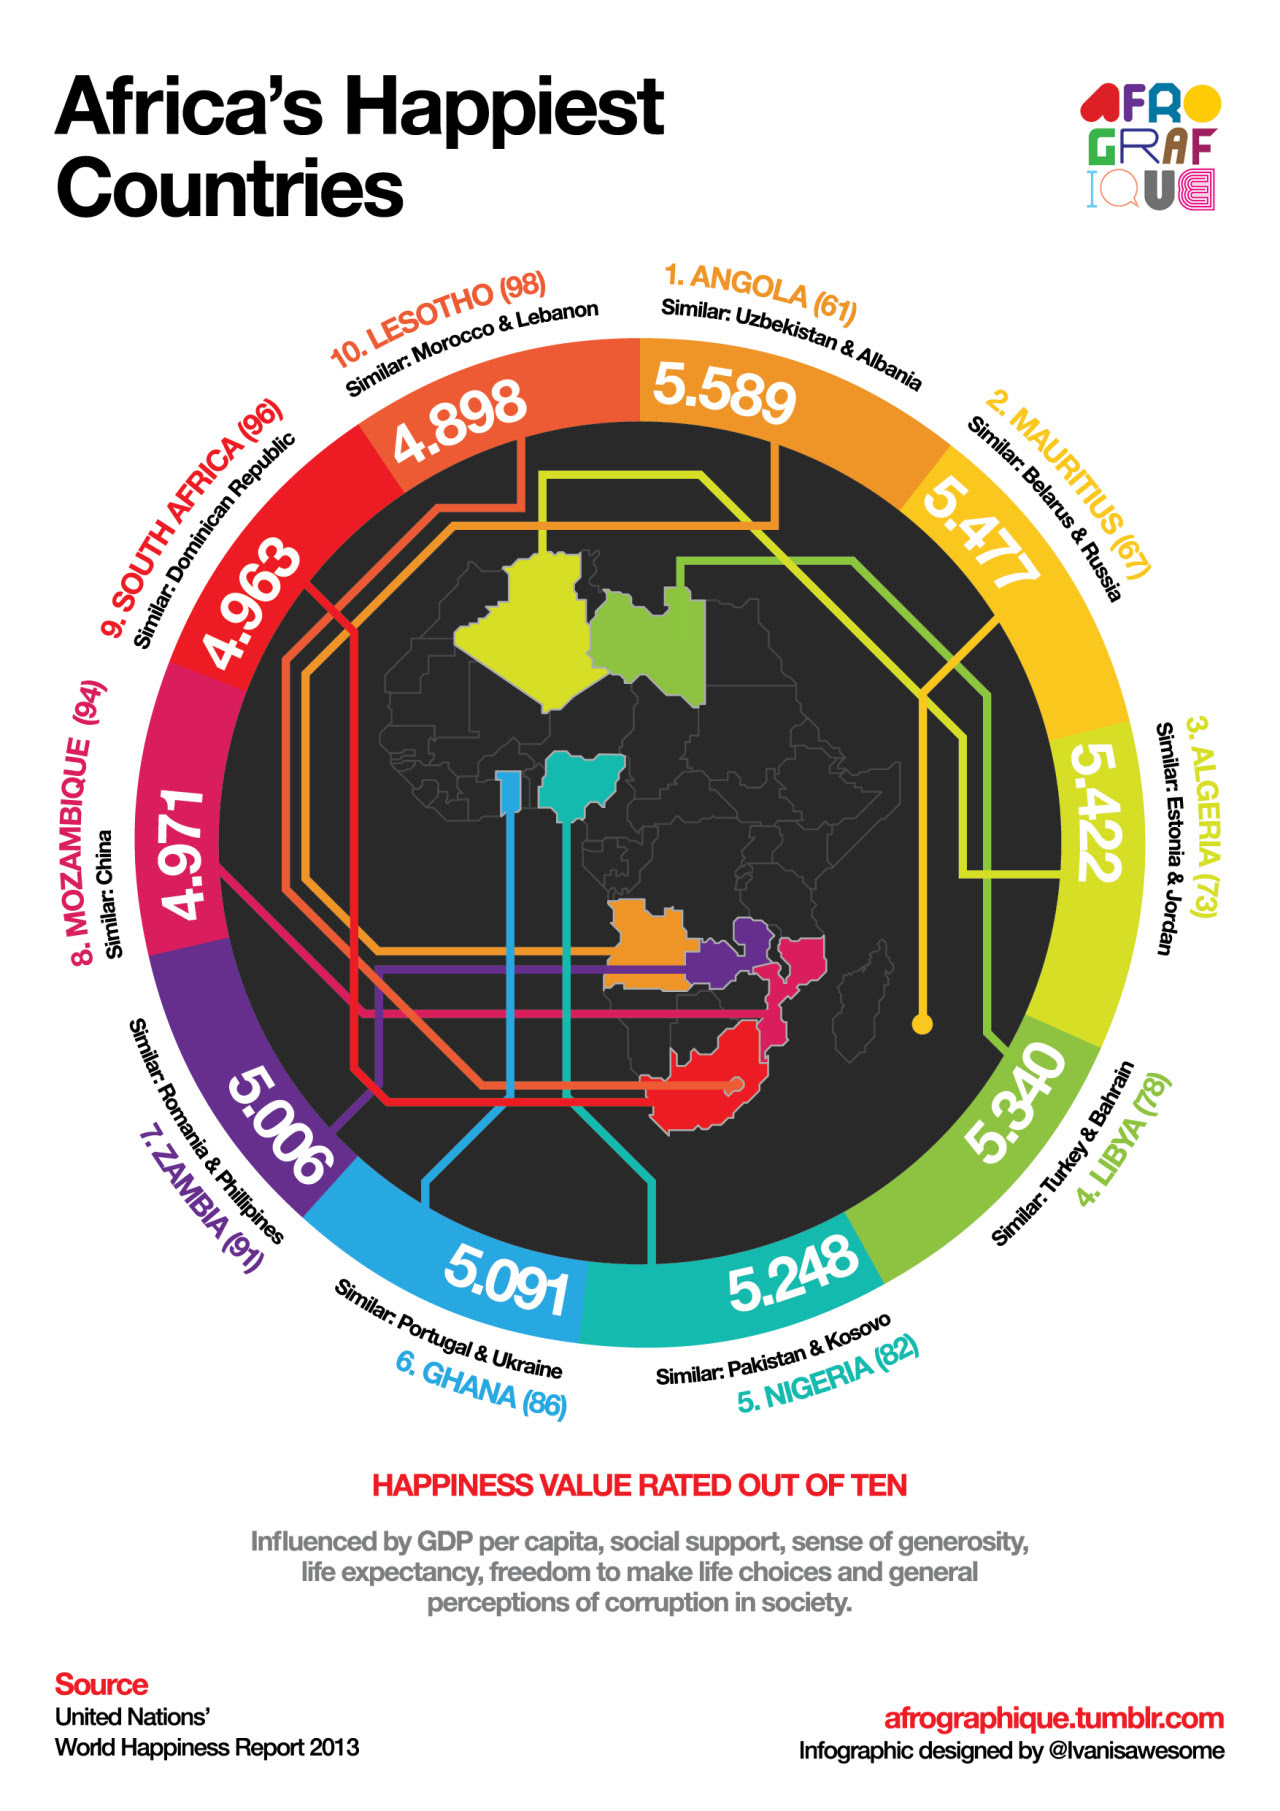 An infographic mapping the happiest African nations. Data from the UN World Happiness Report 2013.